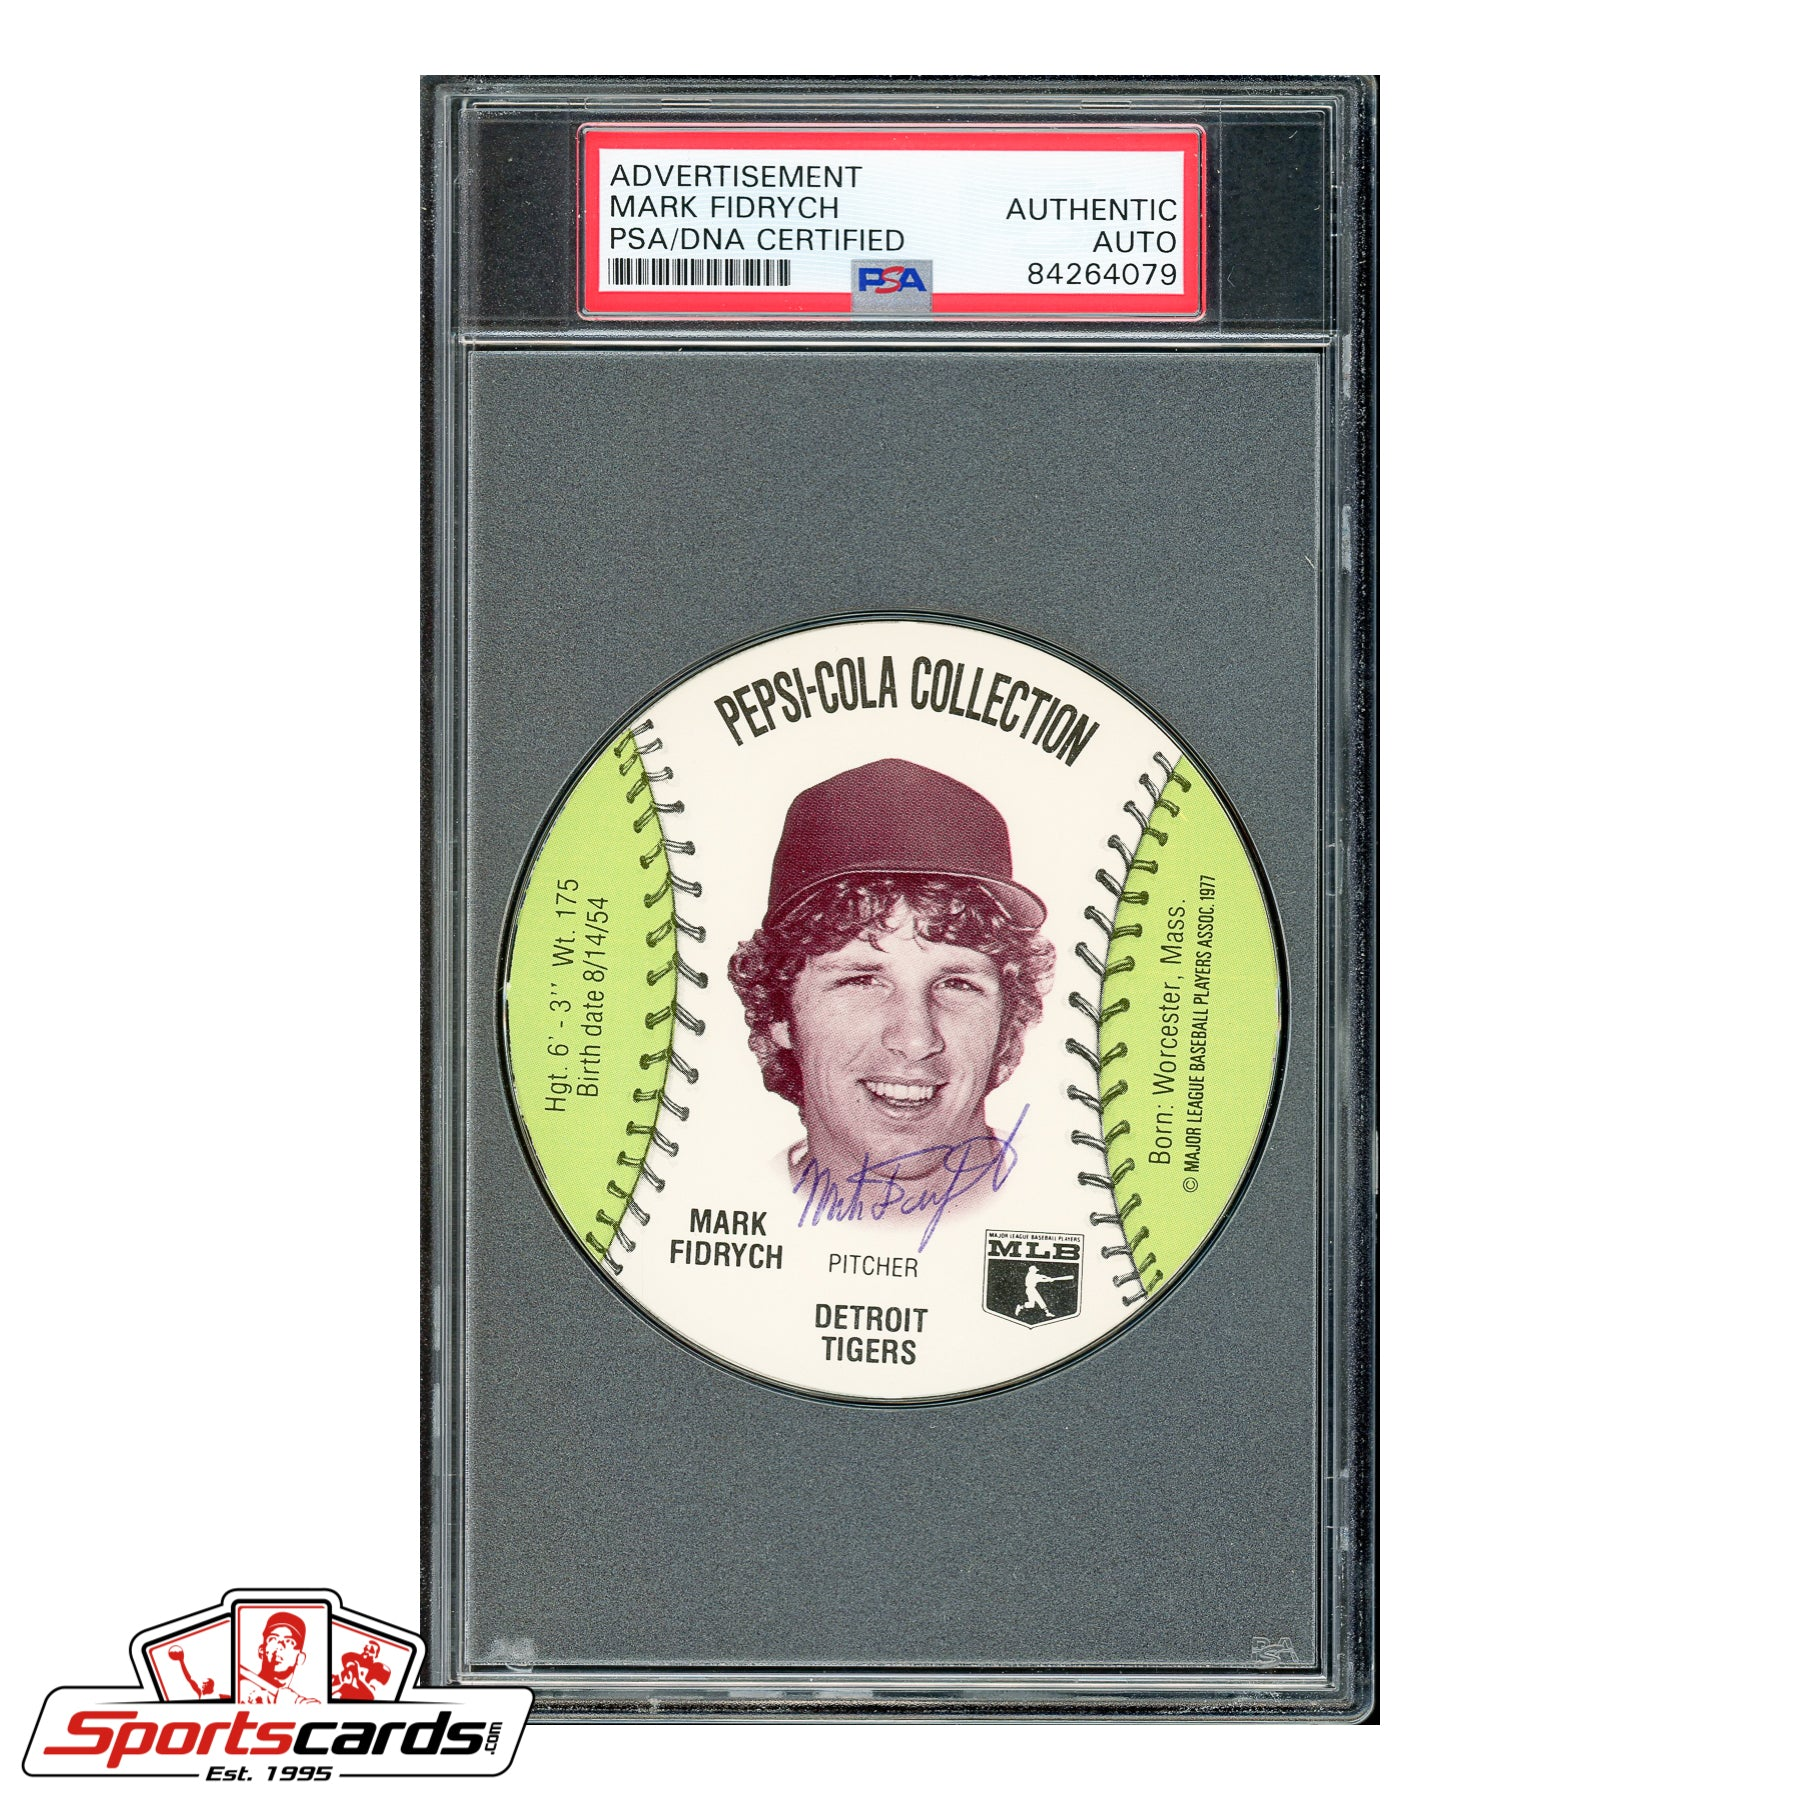 Mark Fidrych Signed Auto 1977 Pepsi Disc - PSA/DNA